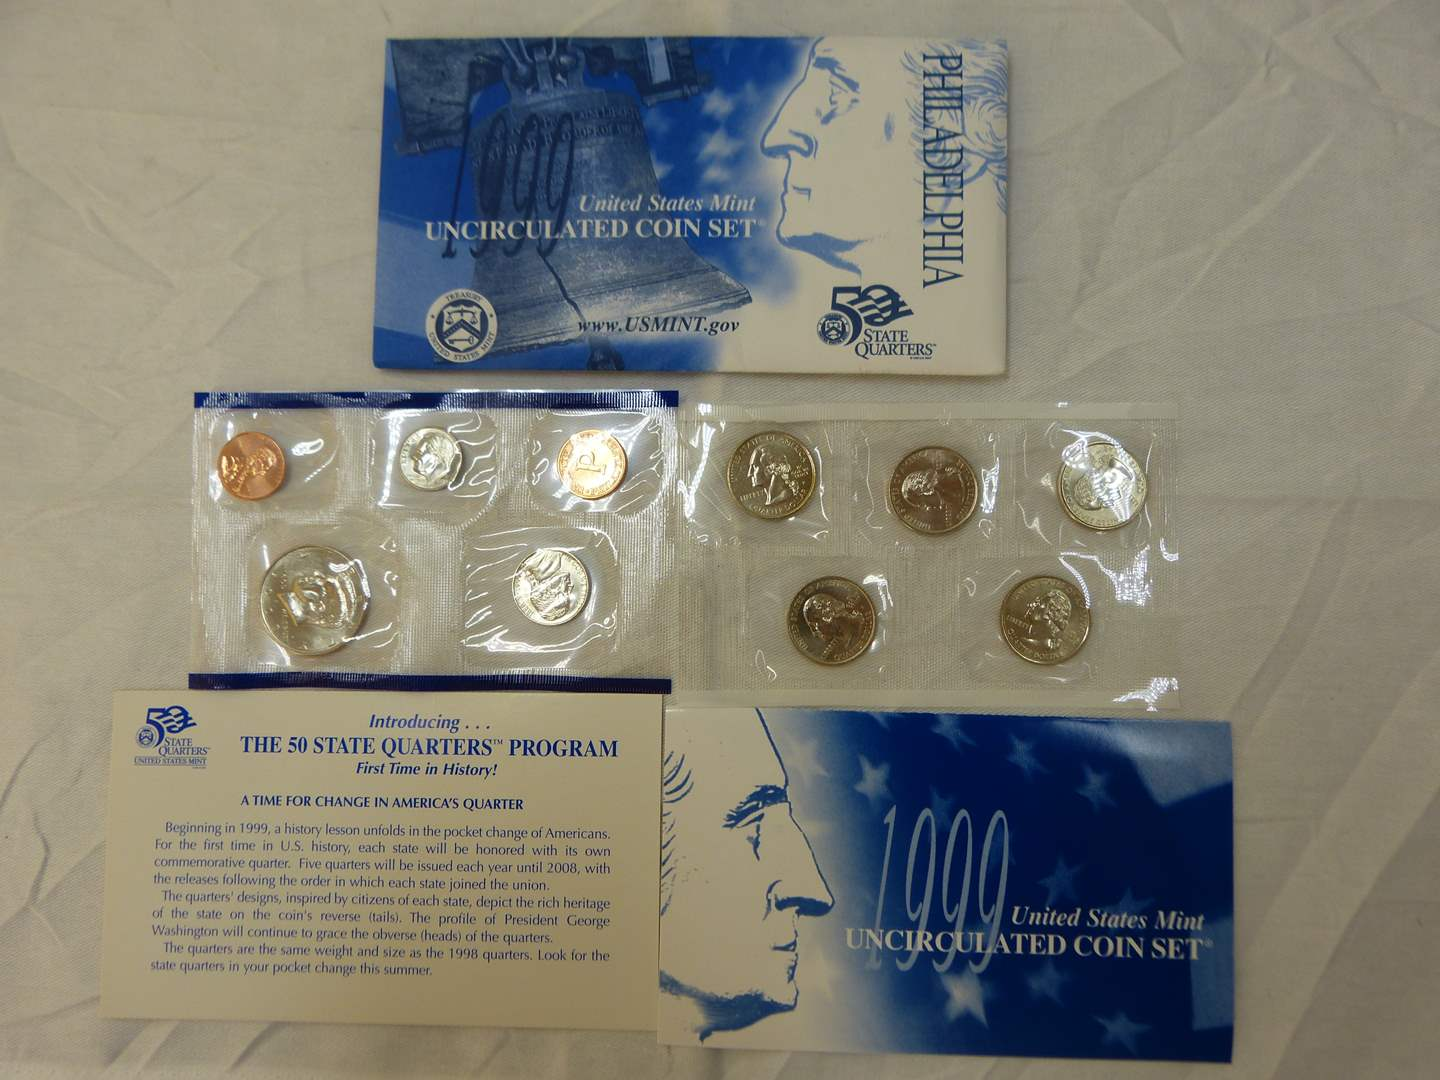 Lot # 103  1999 United States Mint uncirculated Coin Set w/state quarters